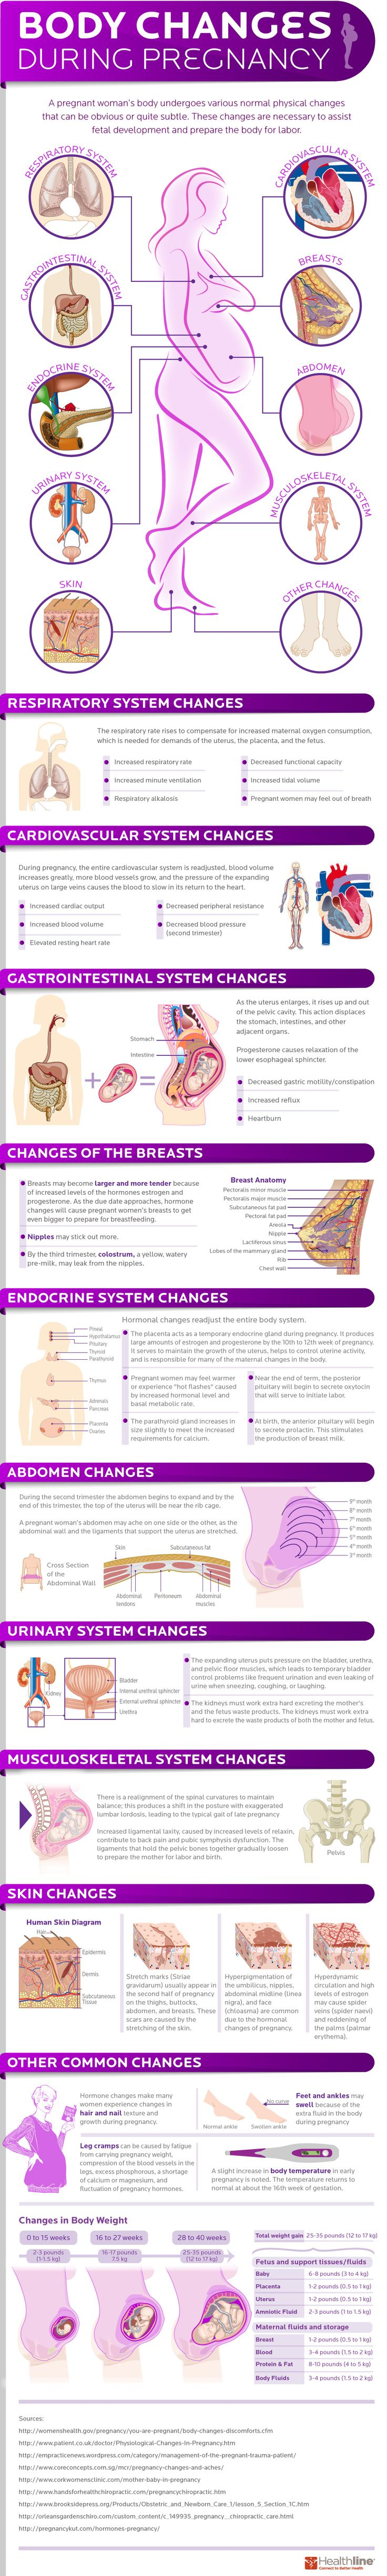 Body Changes During Pregnancy Infographic - This infographic covers all of the